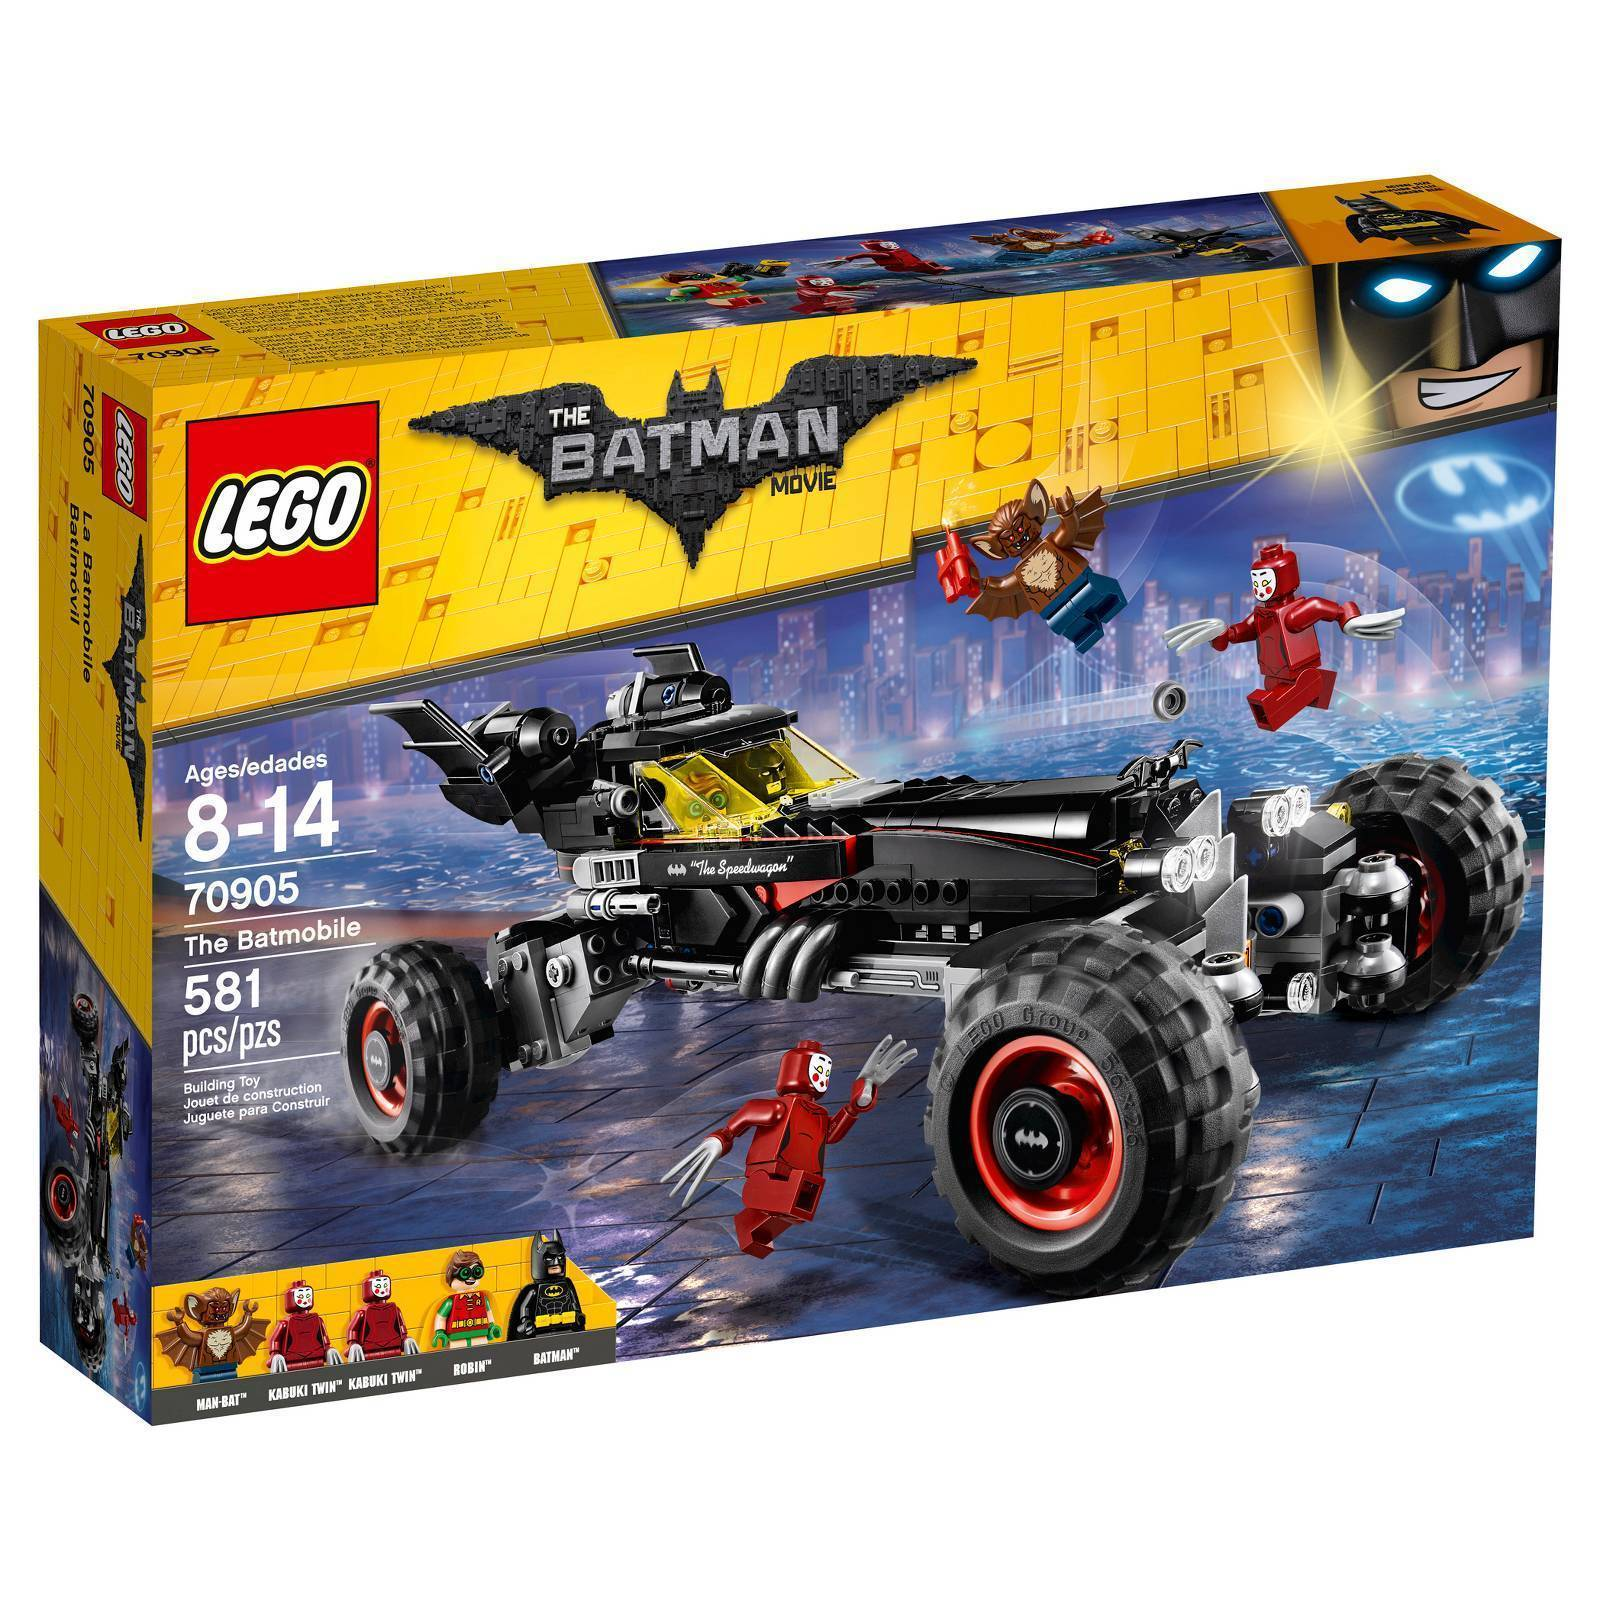 LEGO Batman Movie - The Batmobile 70905 [New] Building Set